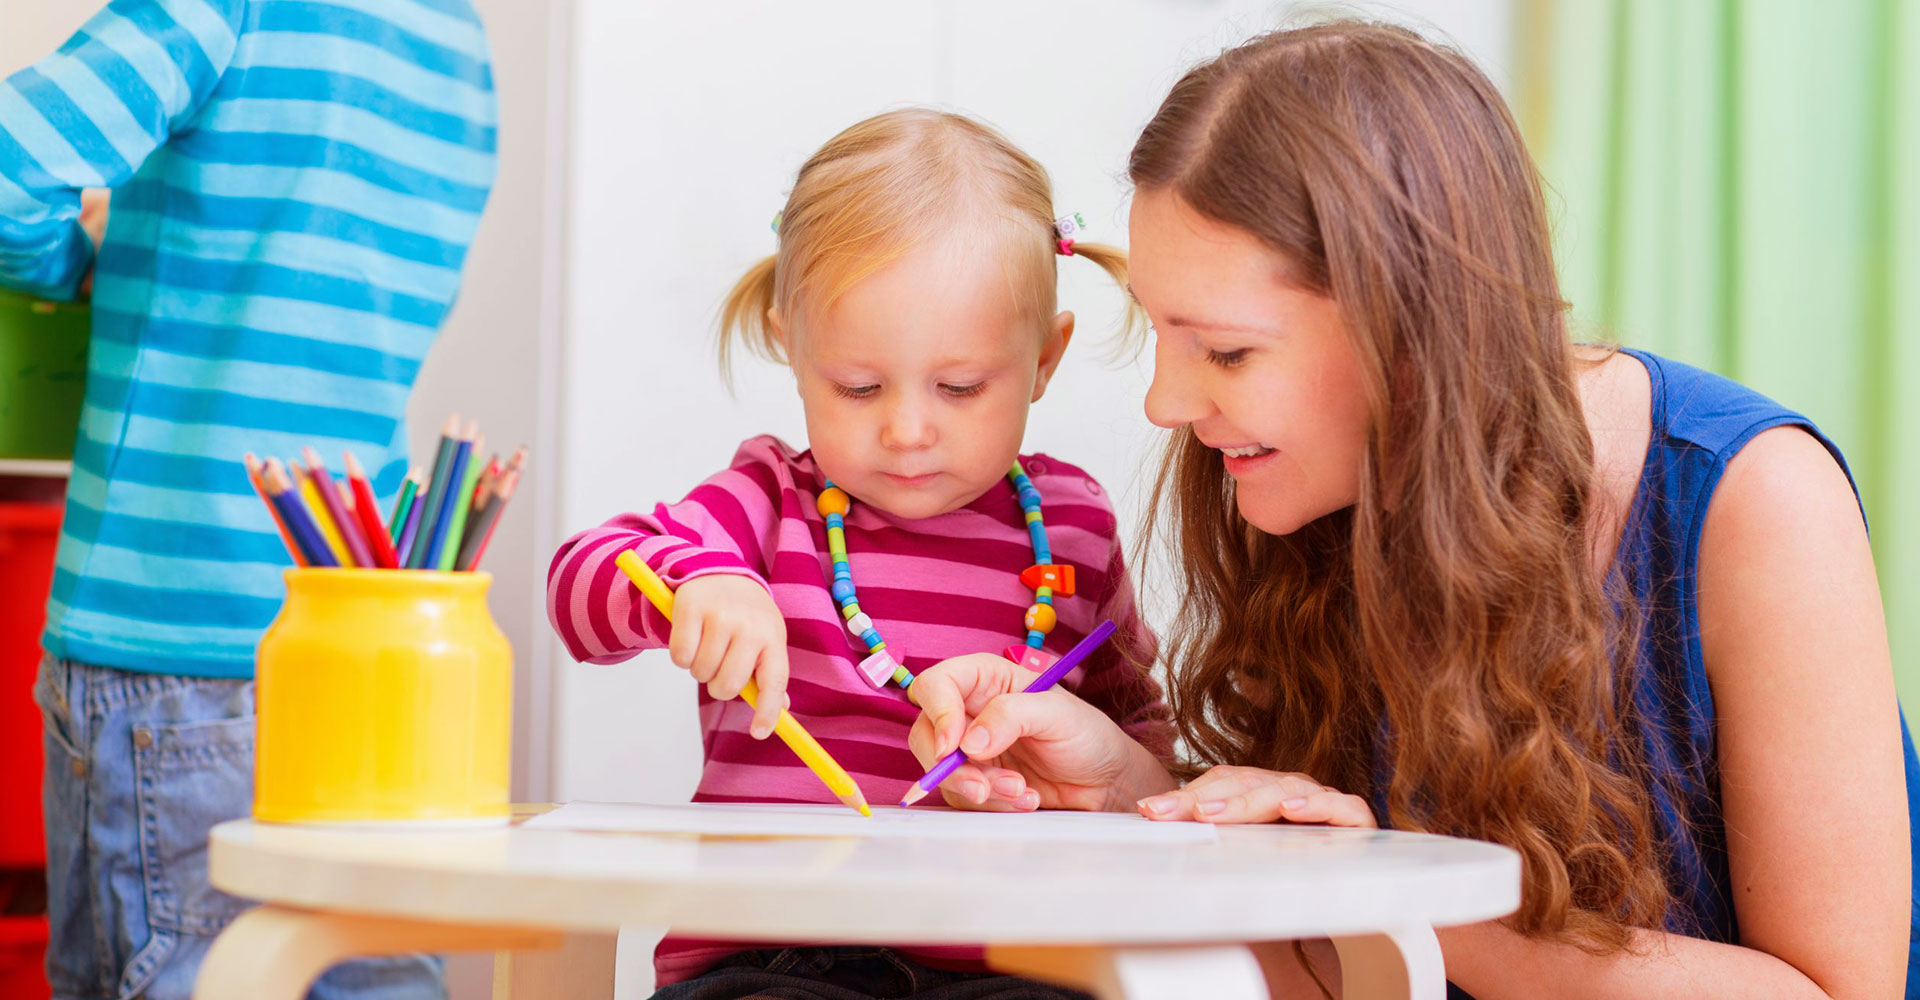 Design Thinking in the Early Childhood Classroom